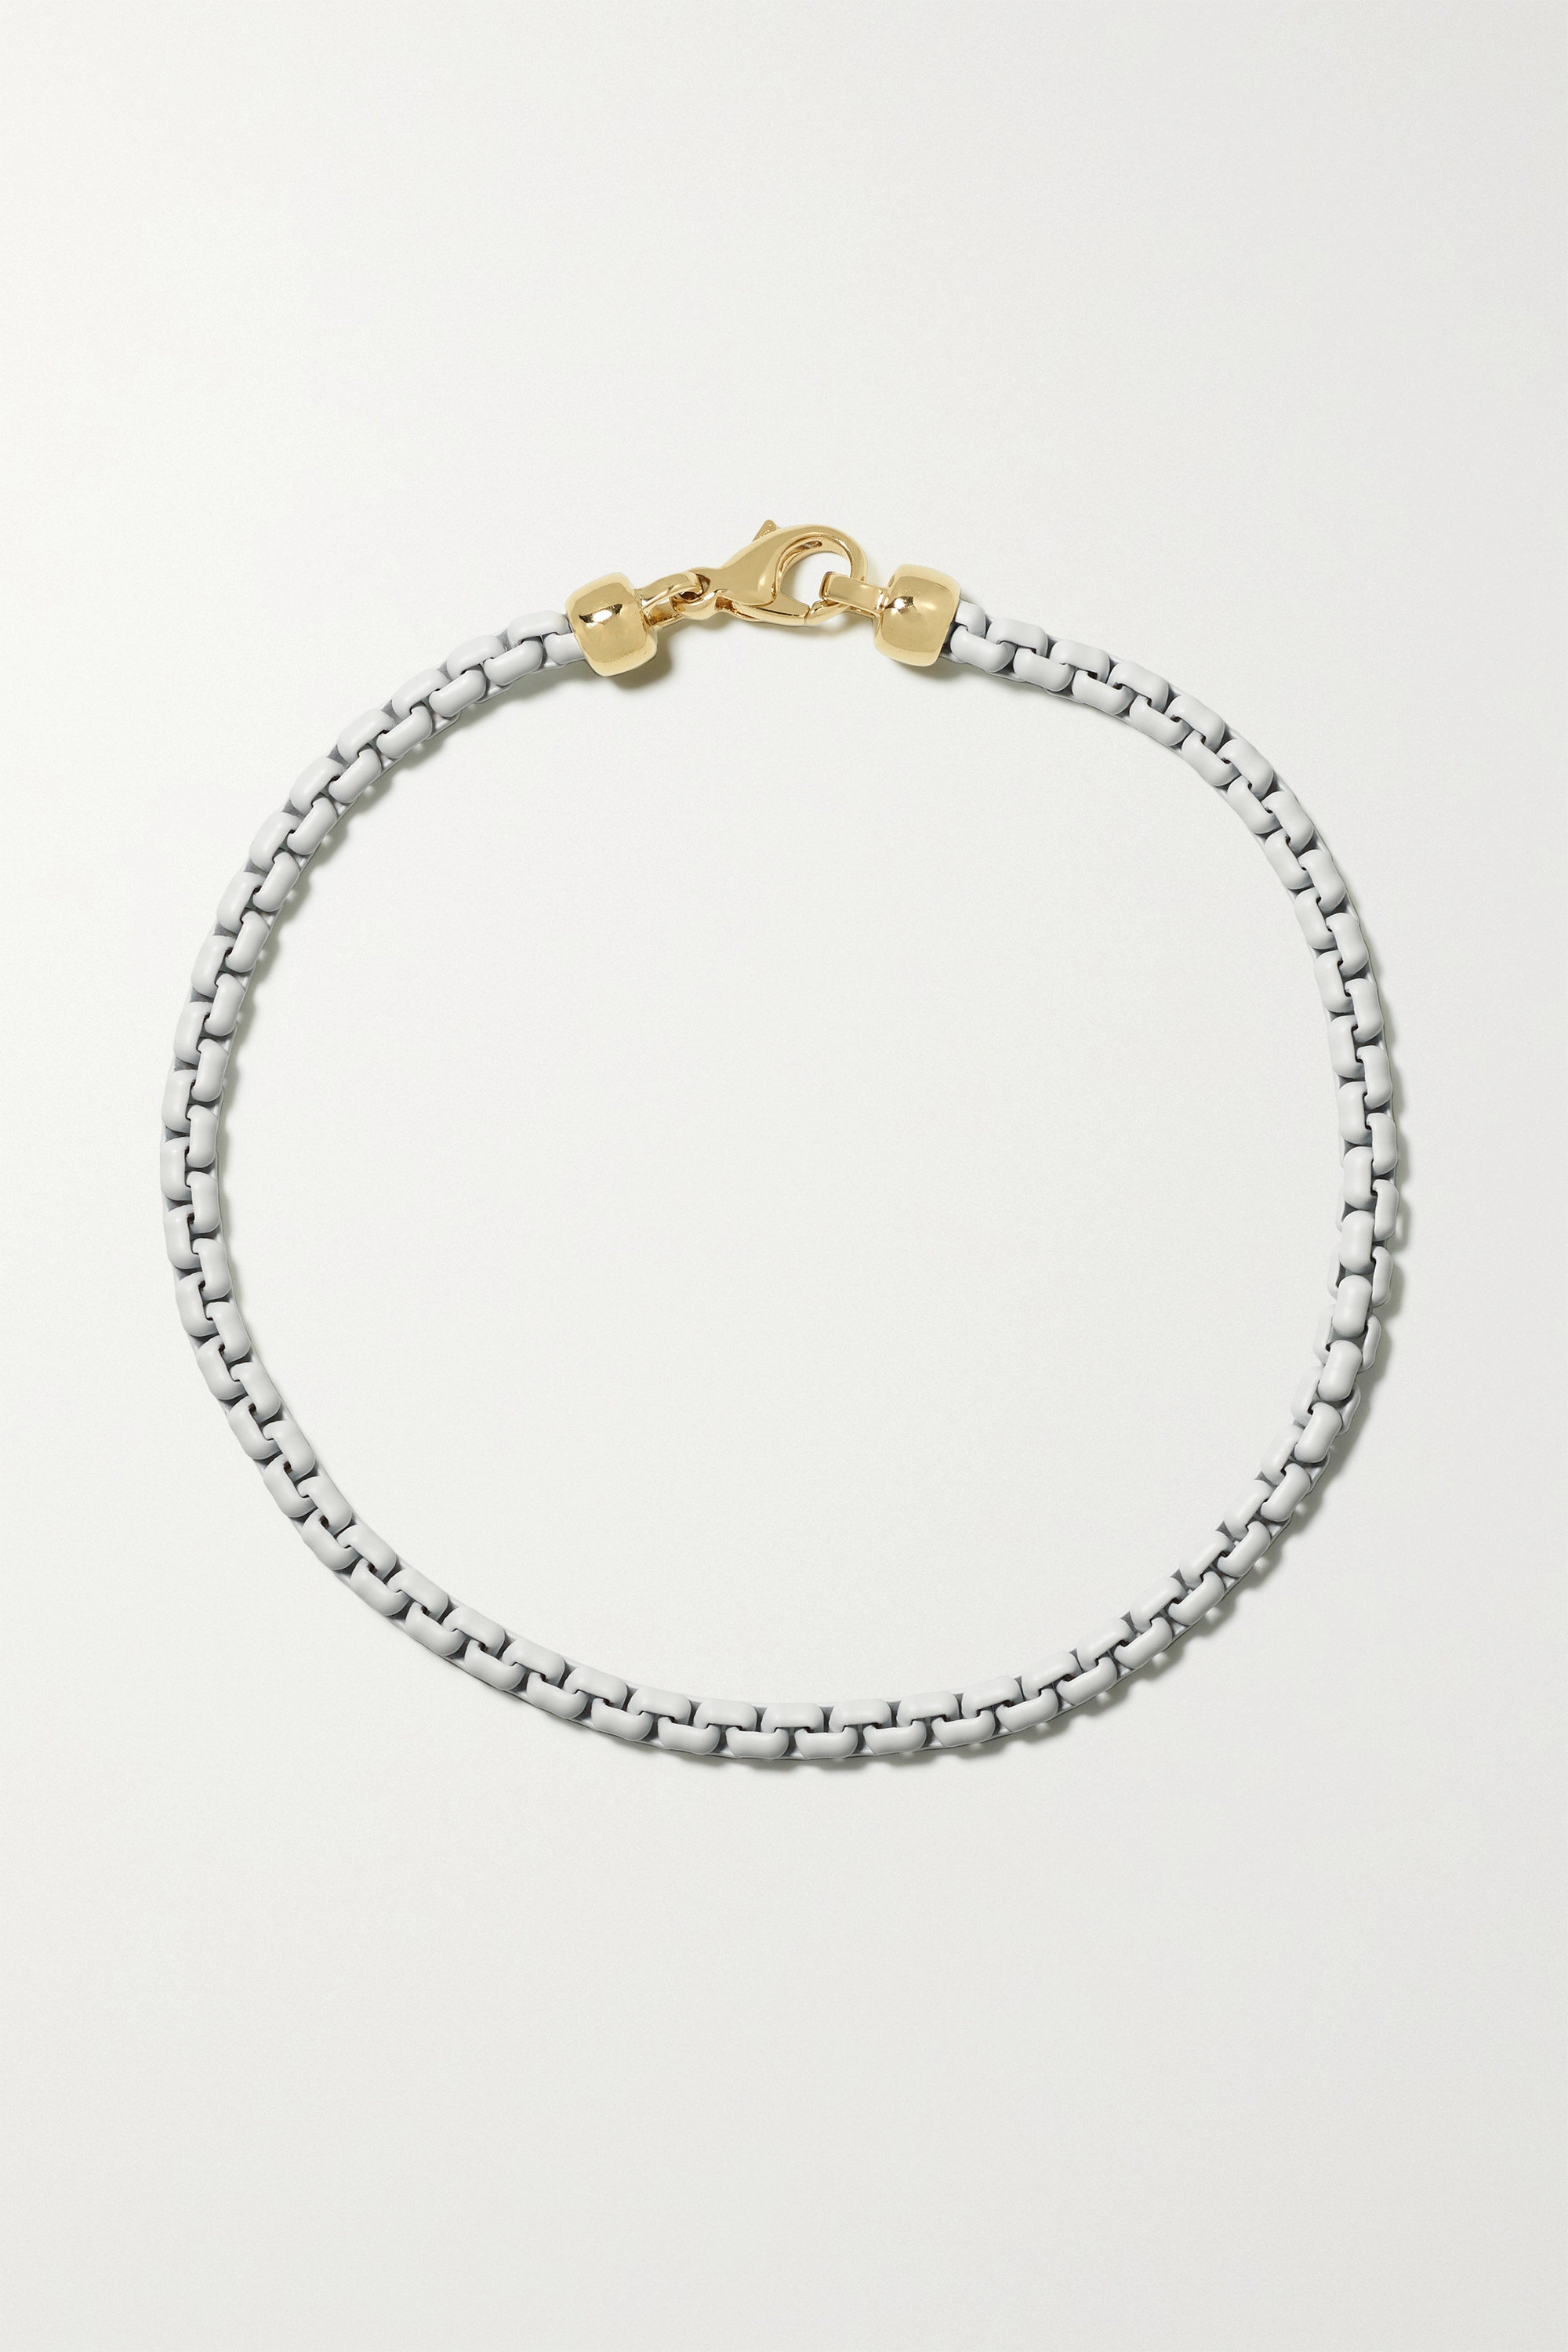 EÉRA Giada silver and gold anklet